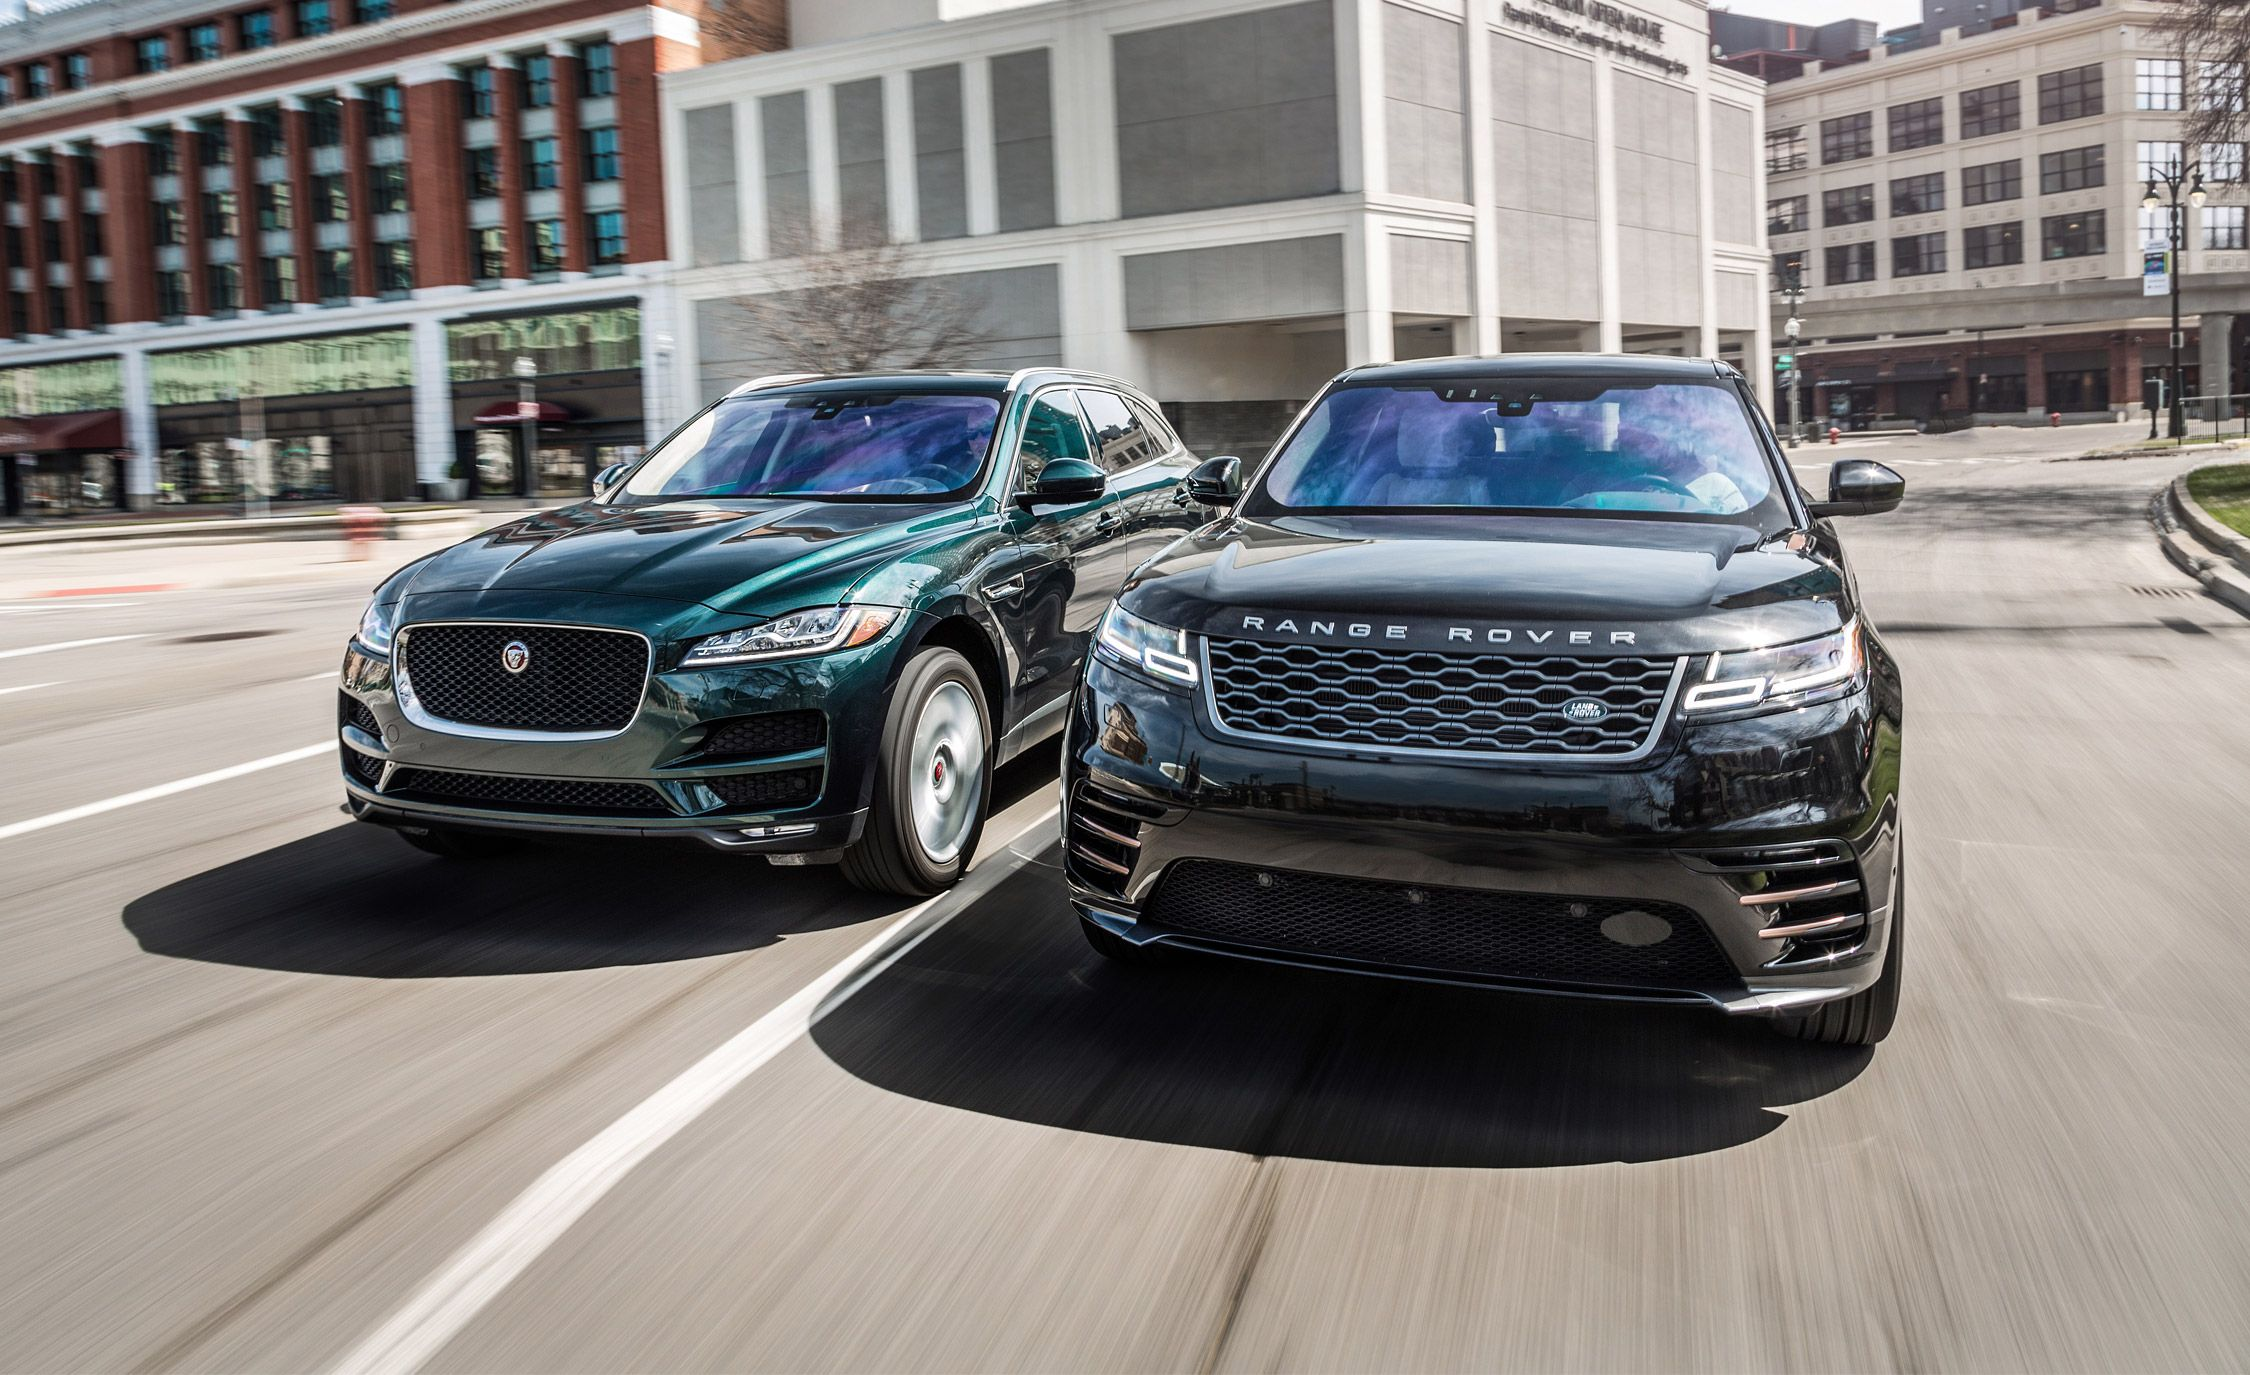 2018 Land Rover Range Rover Velar Long Term Test Review Car And